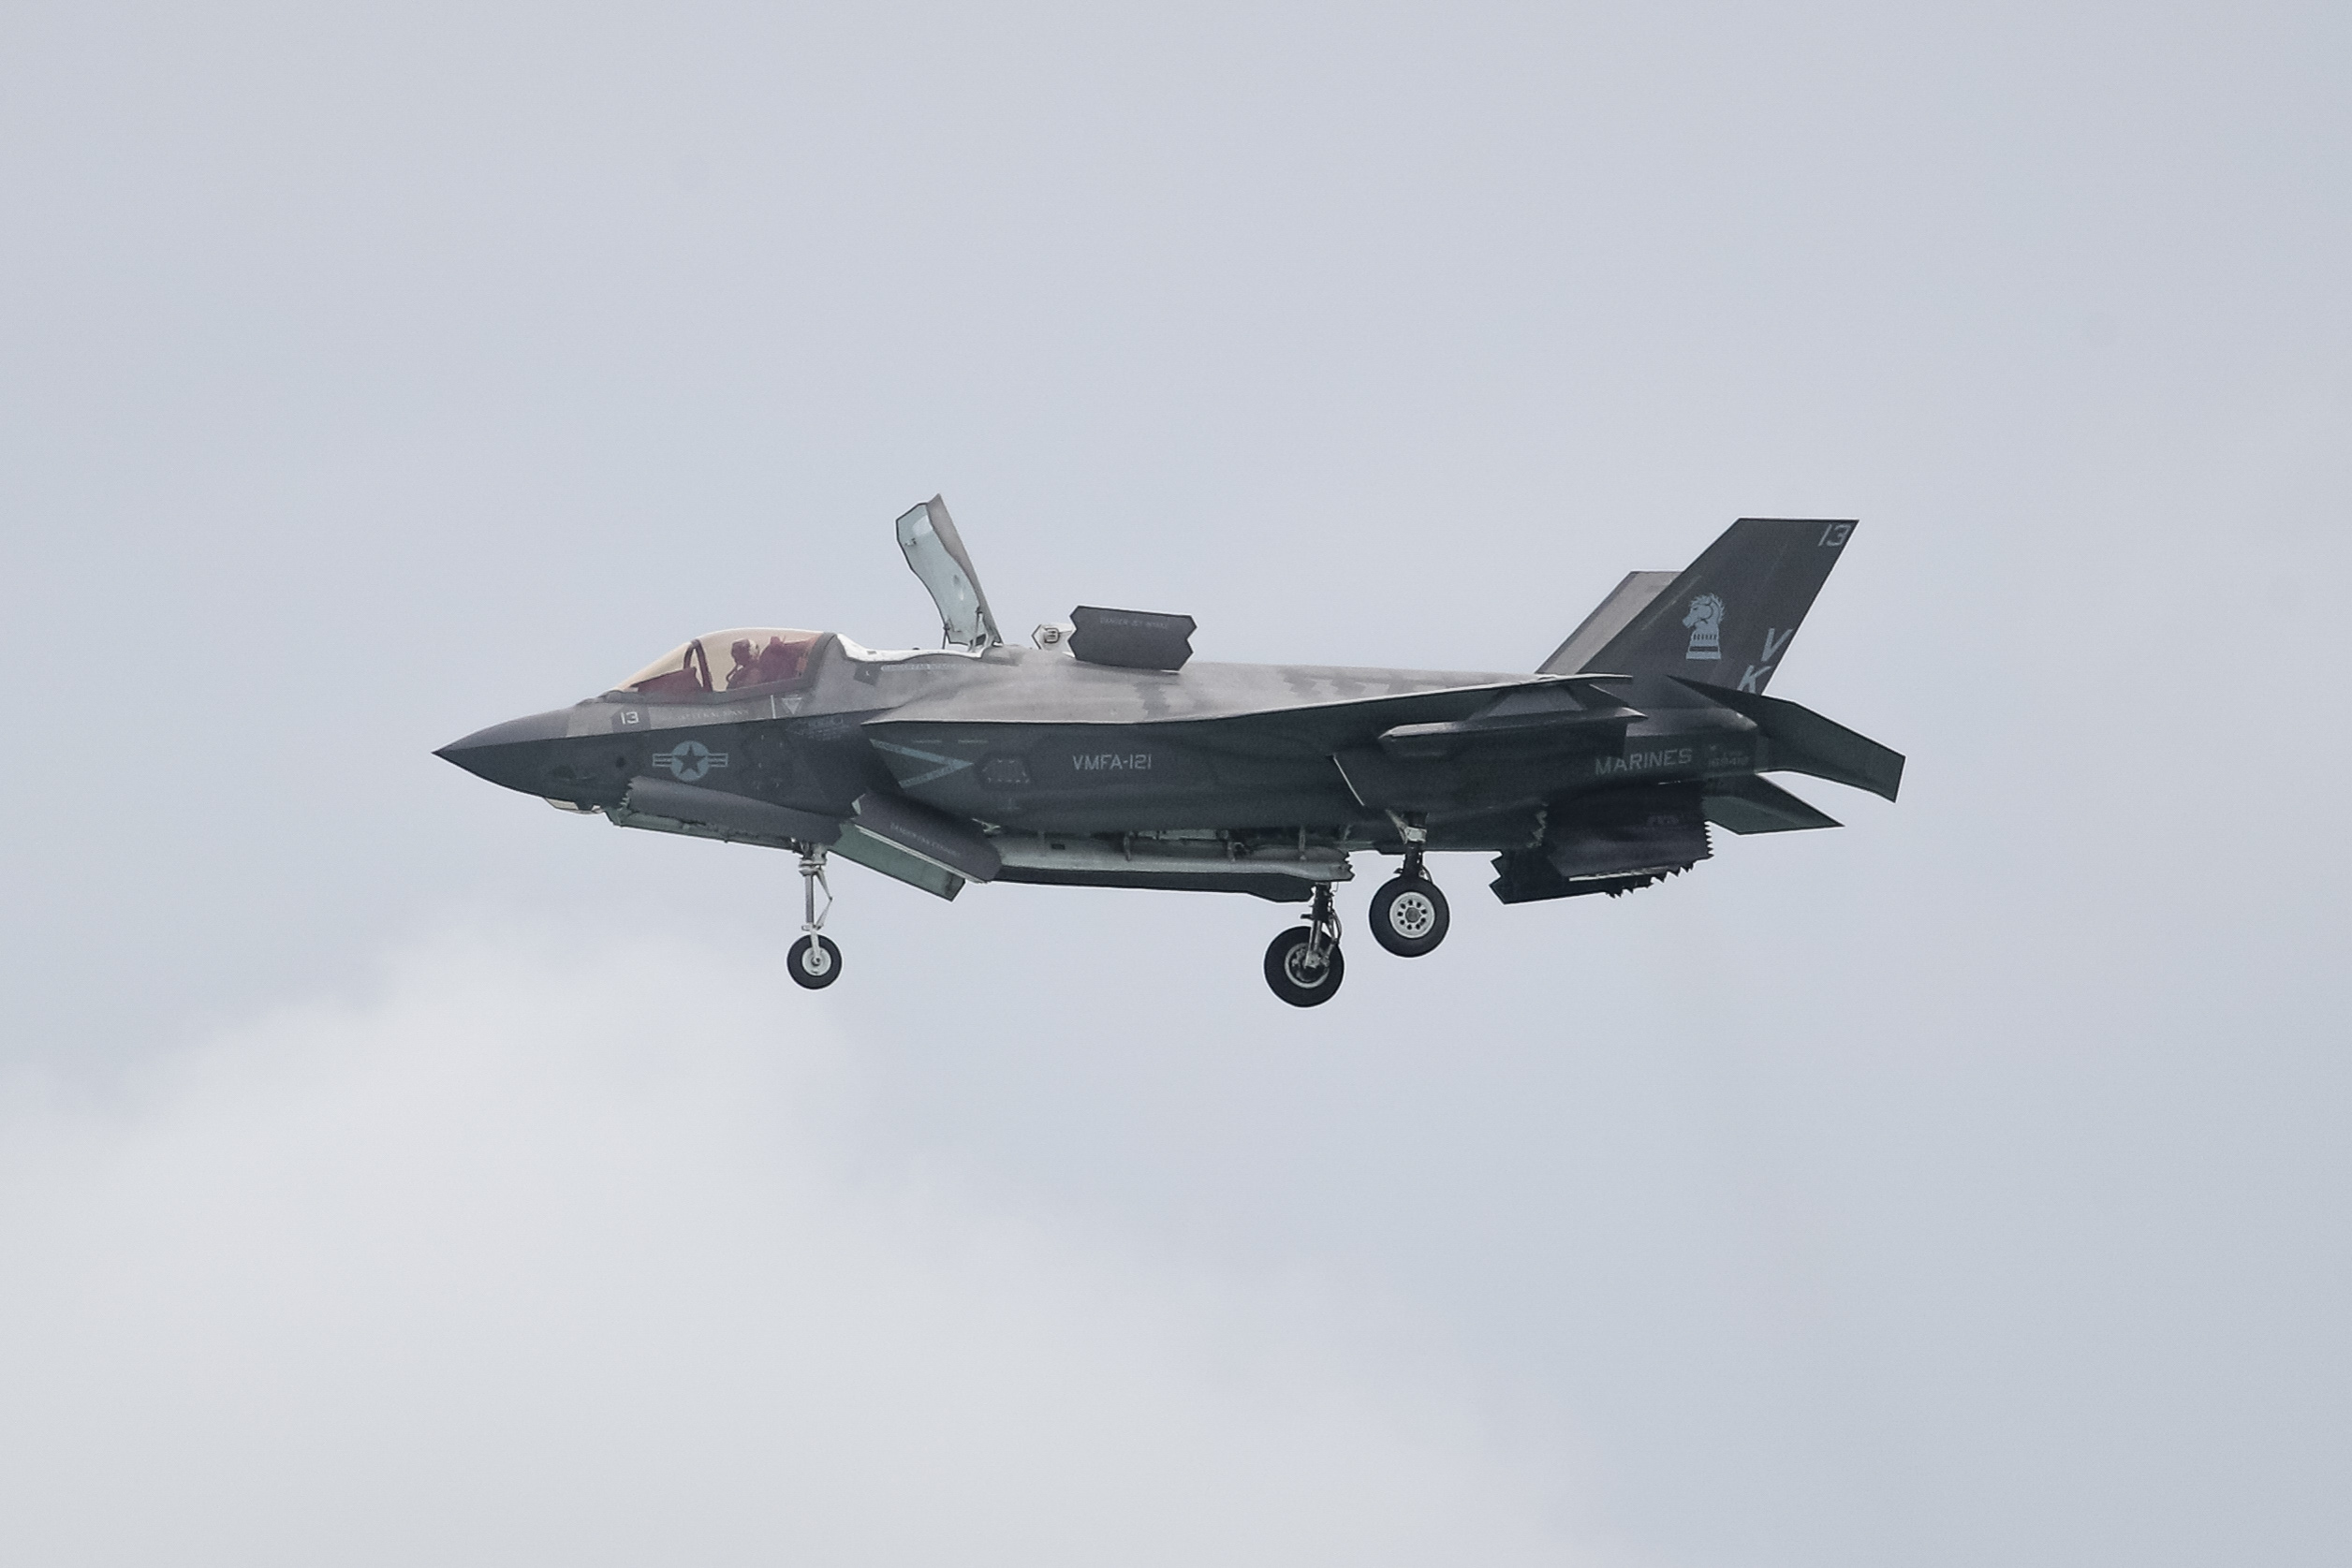 The F-35 fighter is in use by the military in nine nations, including the U.S. Air Force and Marine Corps.